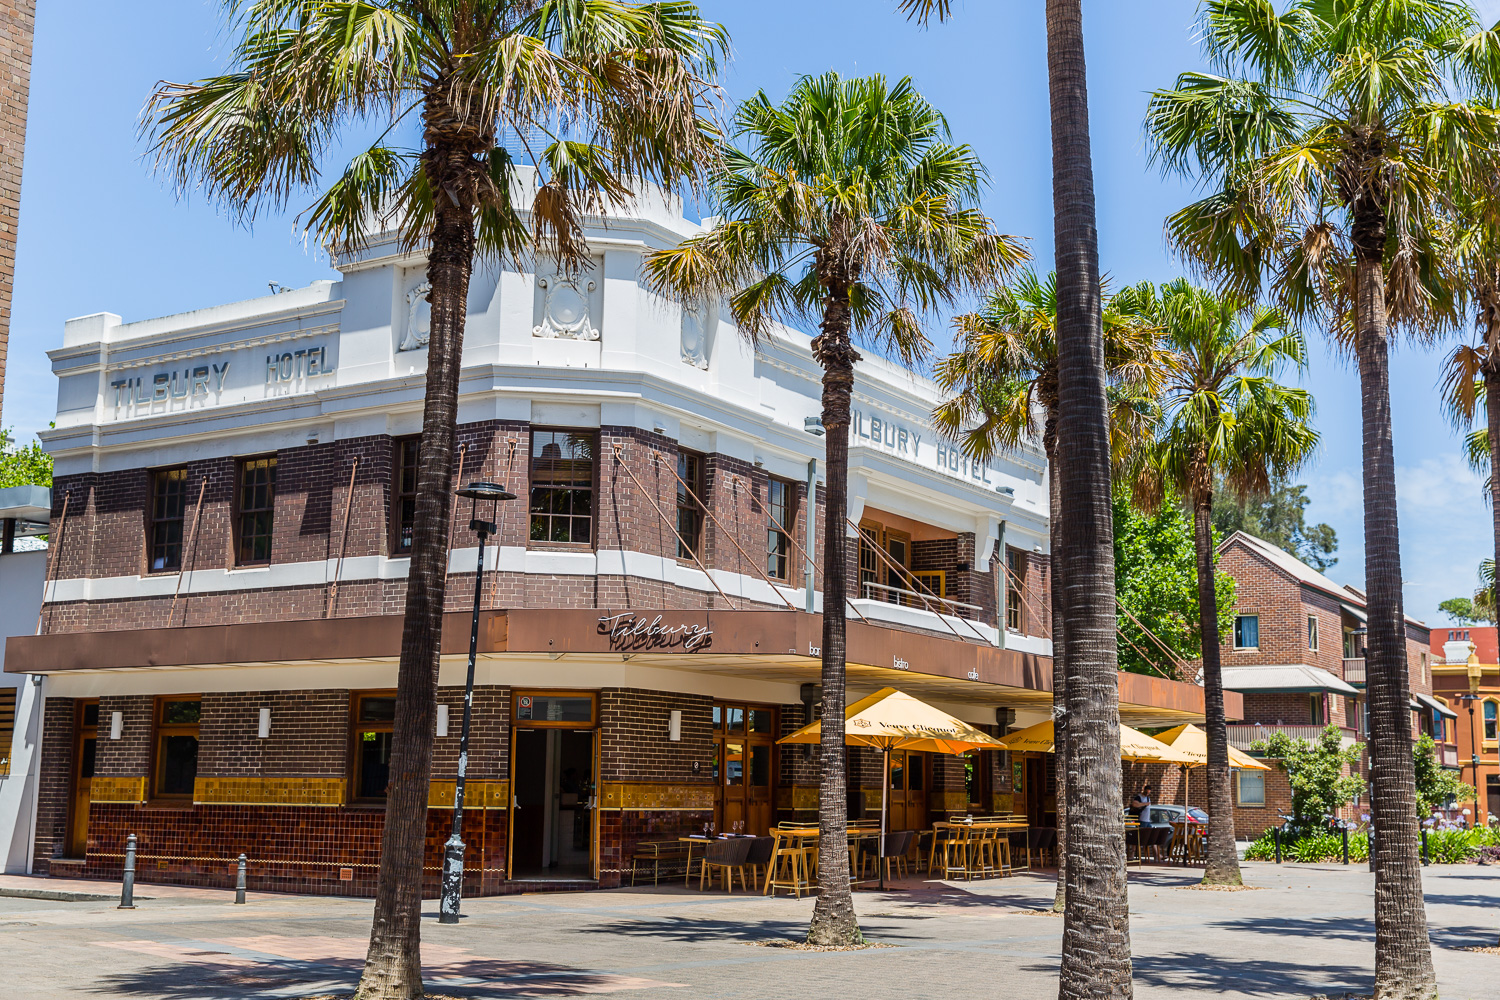 The Tilbury Hotel - Whitsundays Tourism